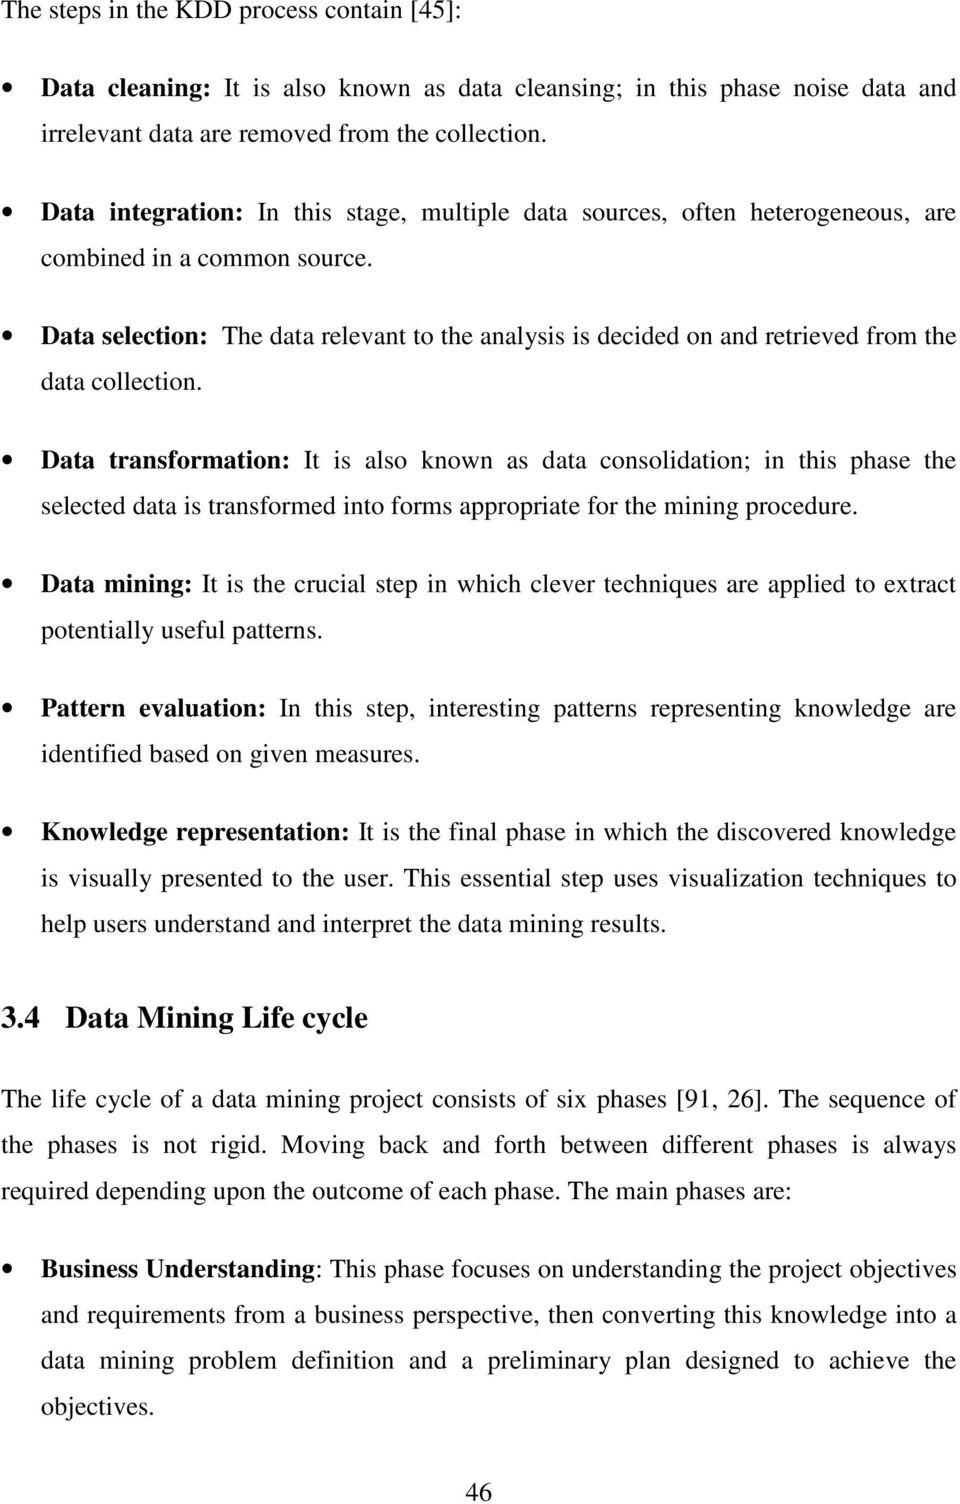 Data selection: The data relevant to the analysis is decided on and retrieved from the data collection.